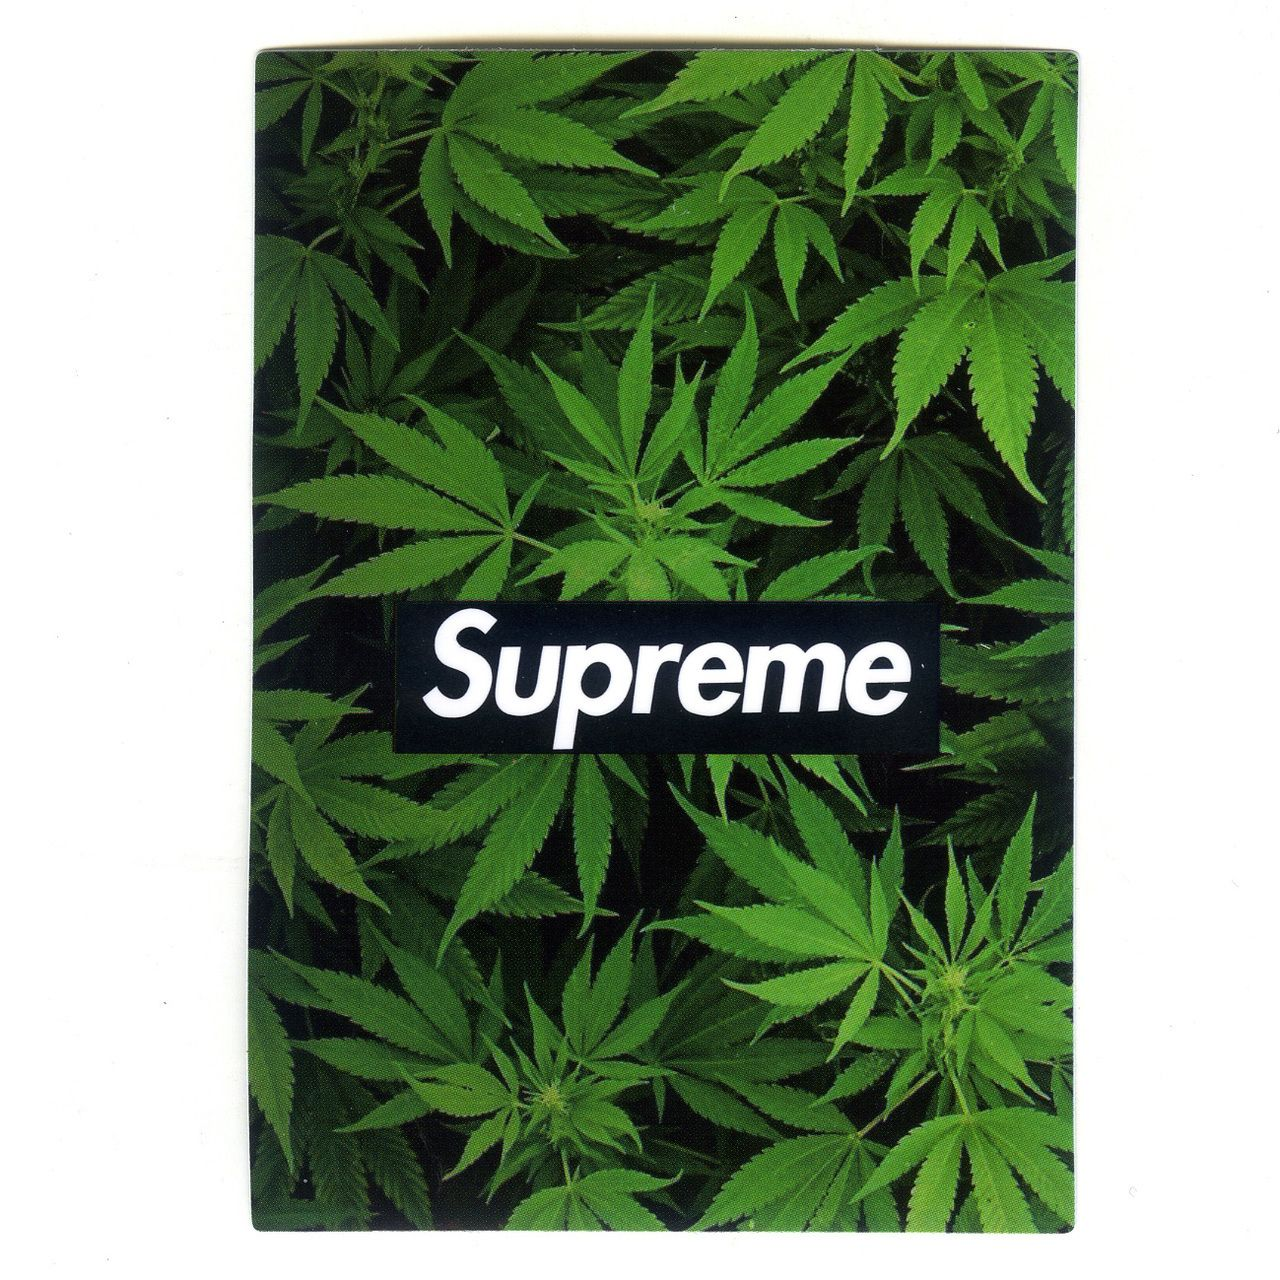 Supreme Weed Tumblr | www.imgkid.com - The Image Kid Has It!